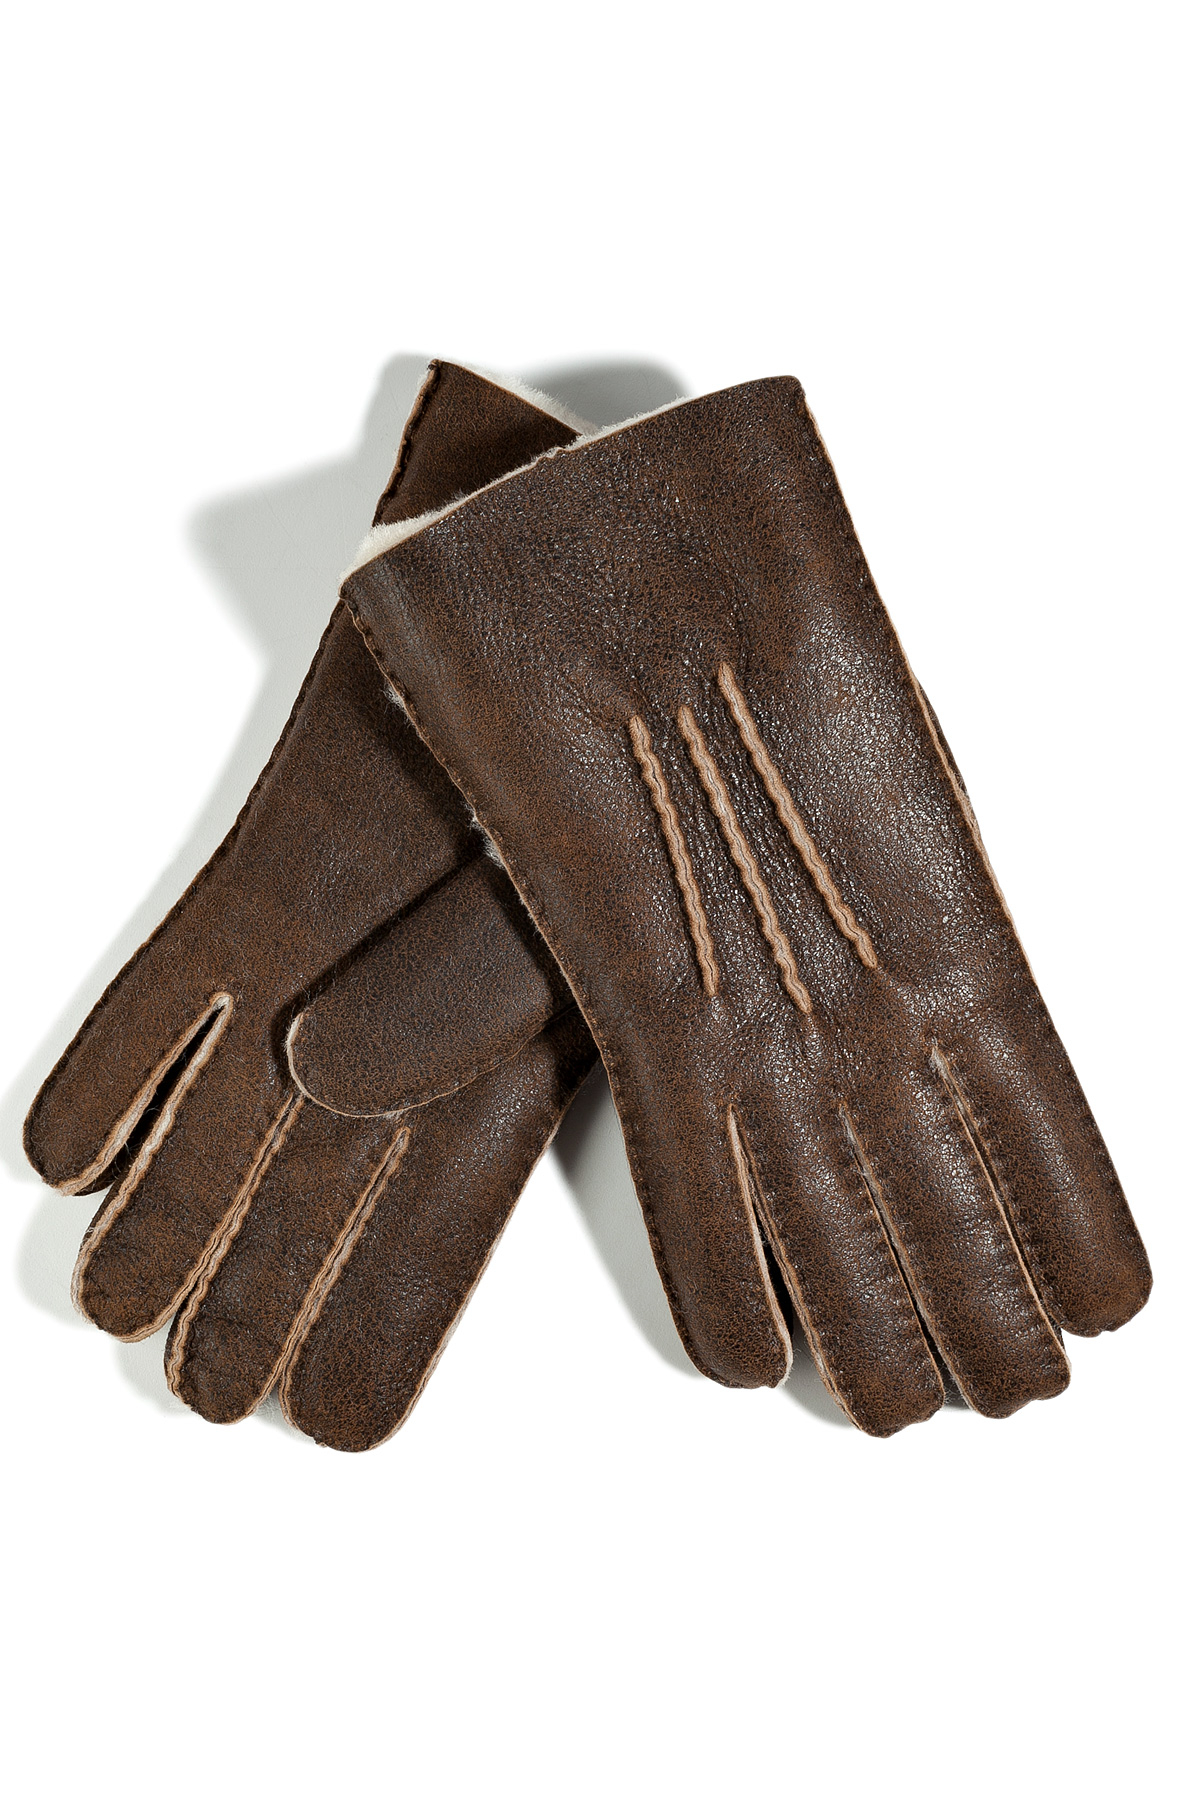 Ladies leather gloves australia -  Mens Shearling Gloves Gloves